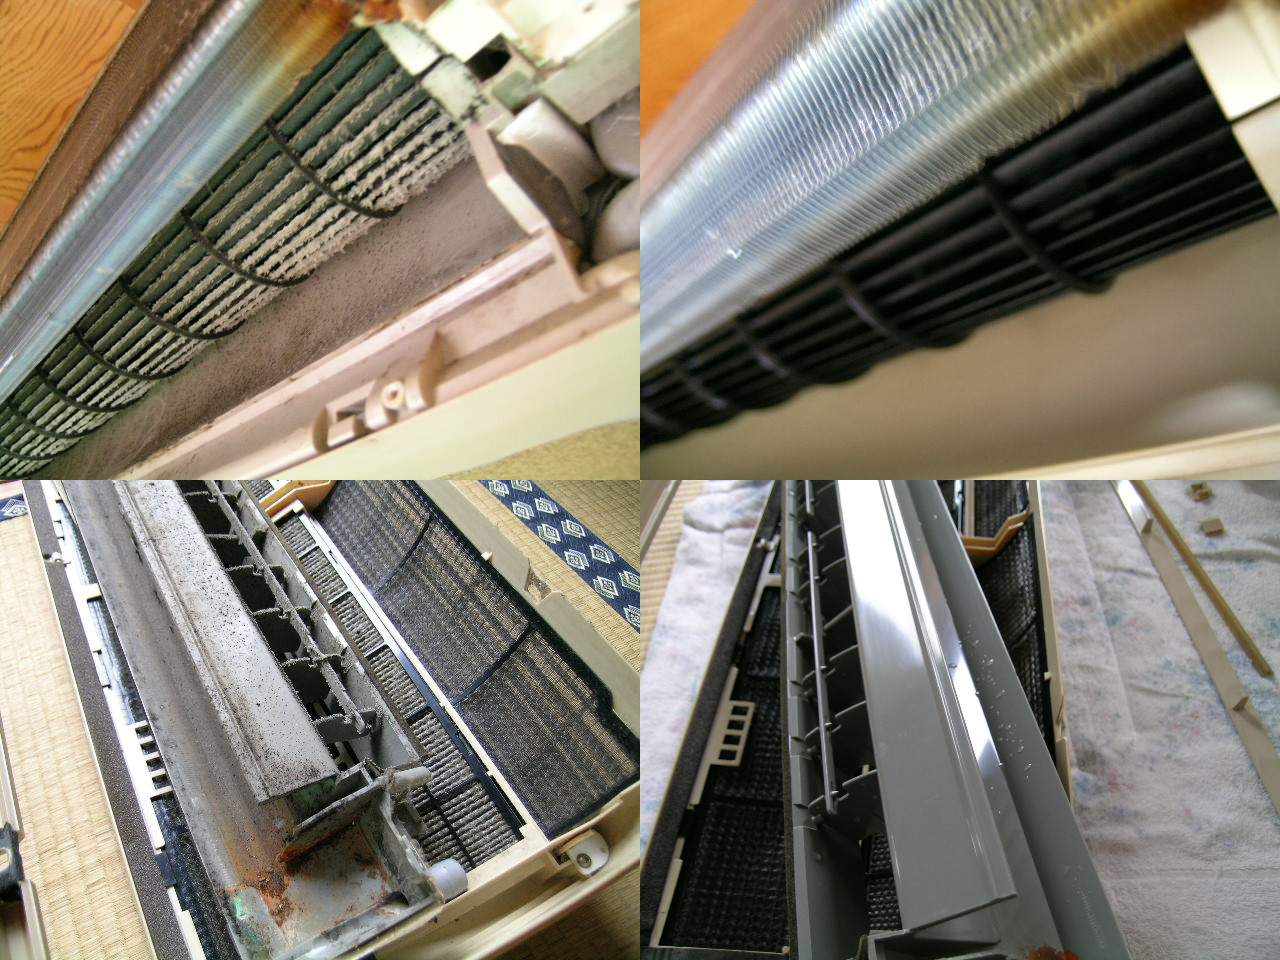 http://ajras.net/images/110531-aircon2.jpg